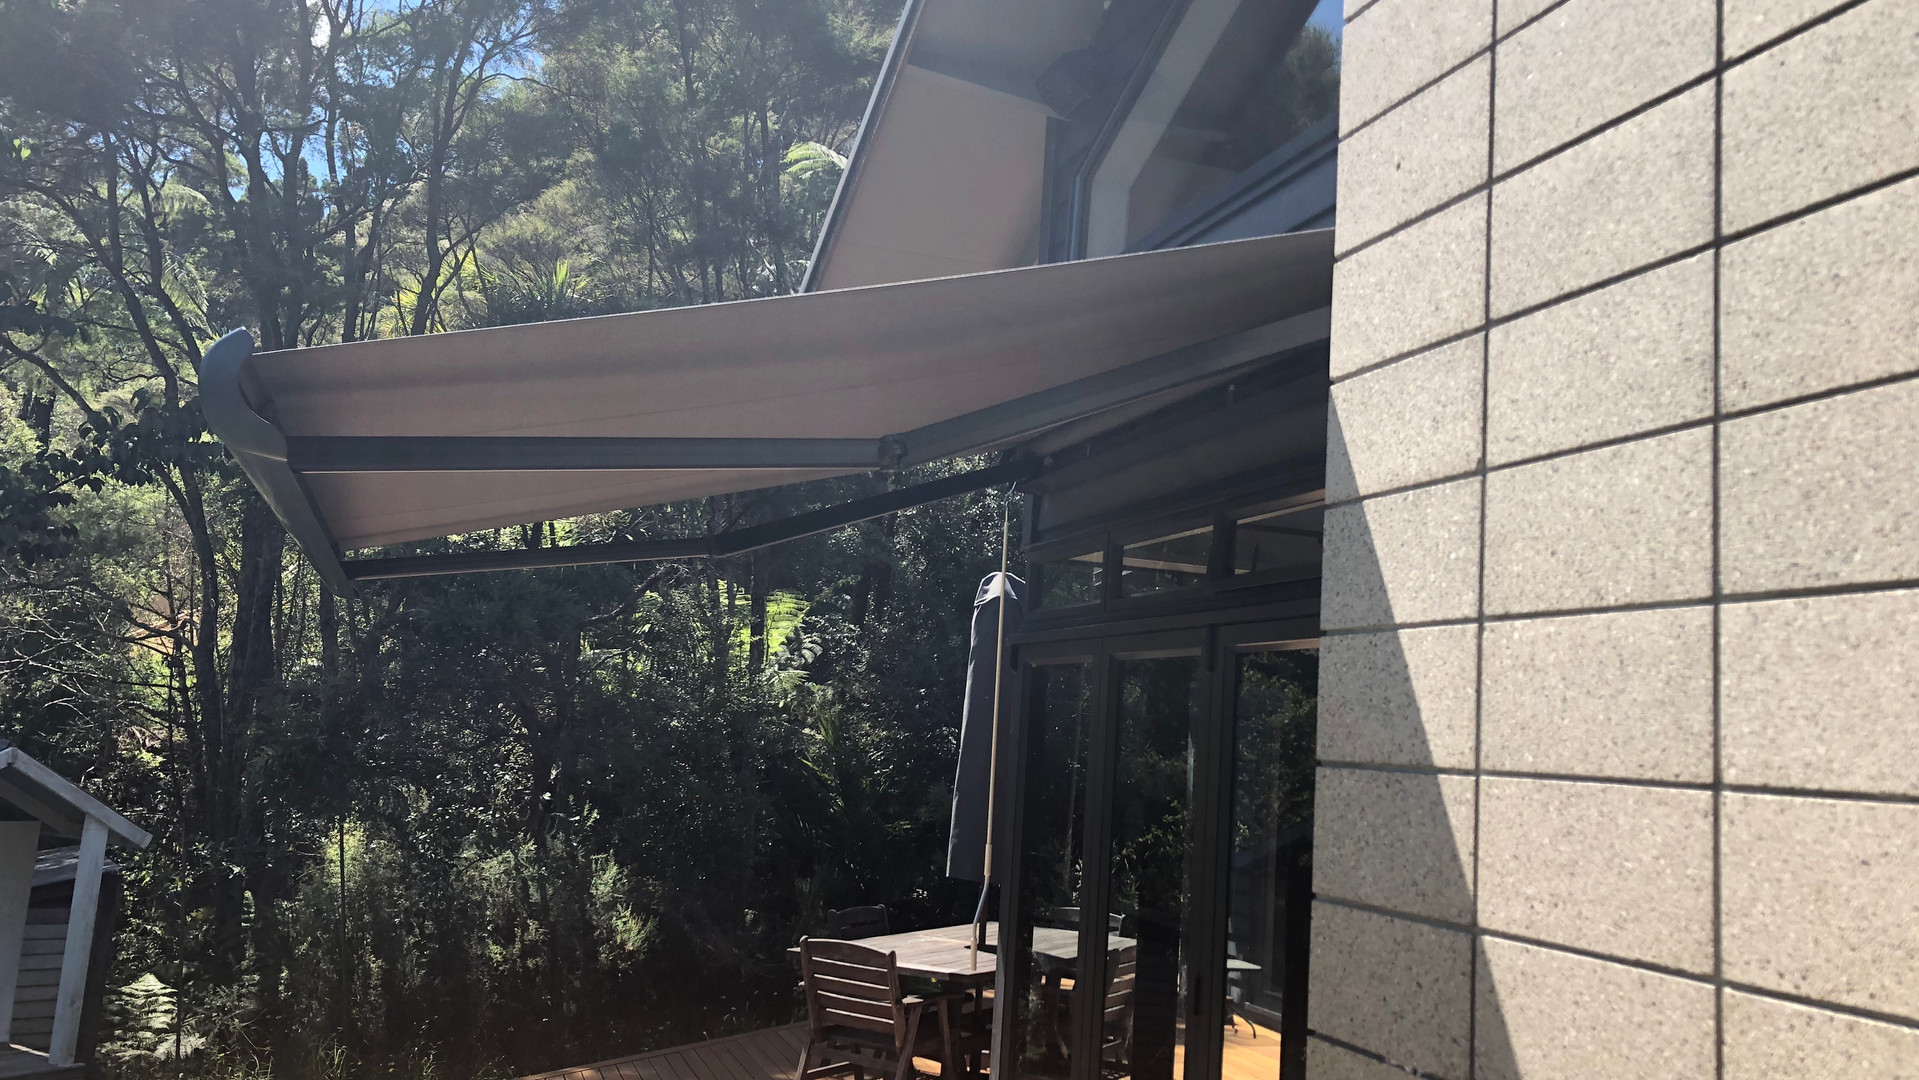 shademaster retractable awning.jpg